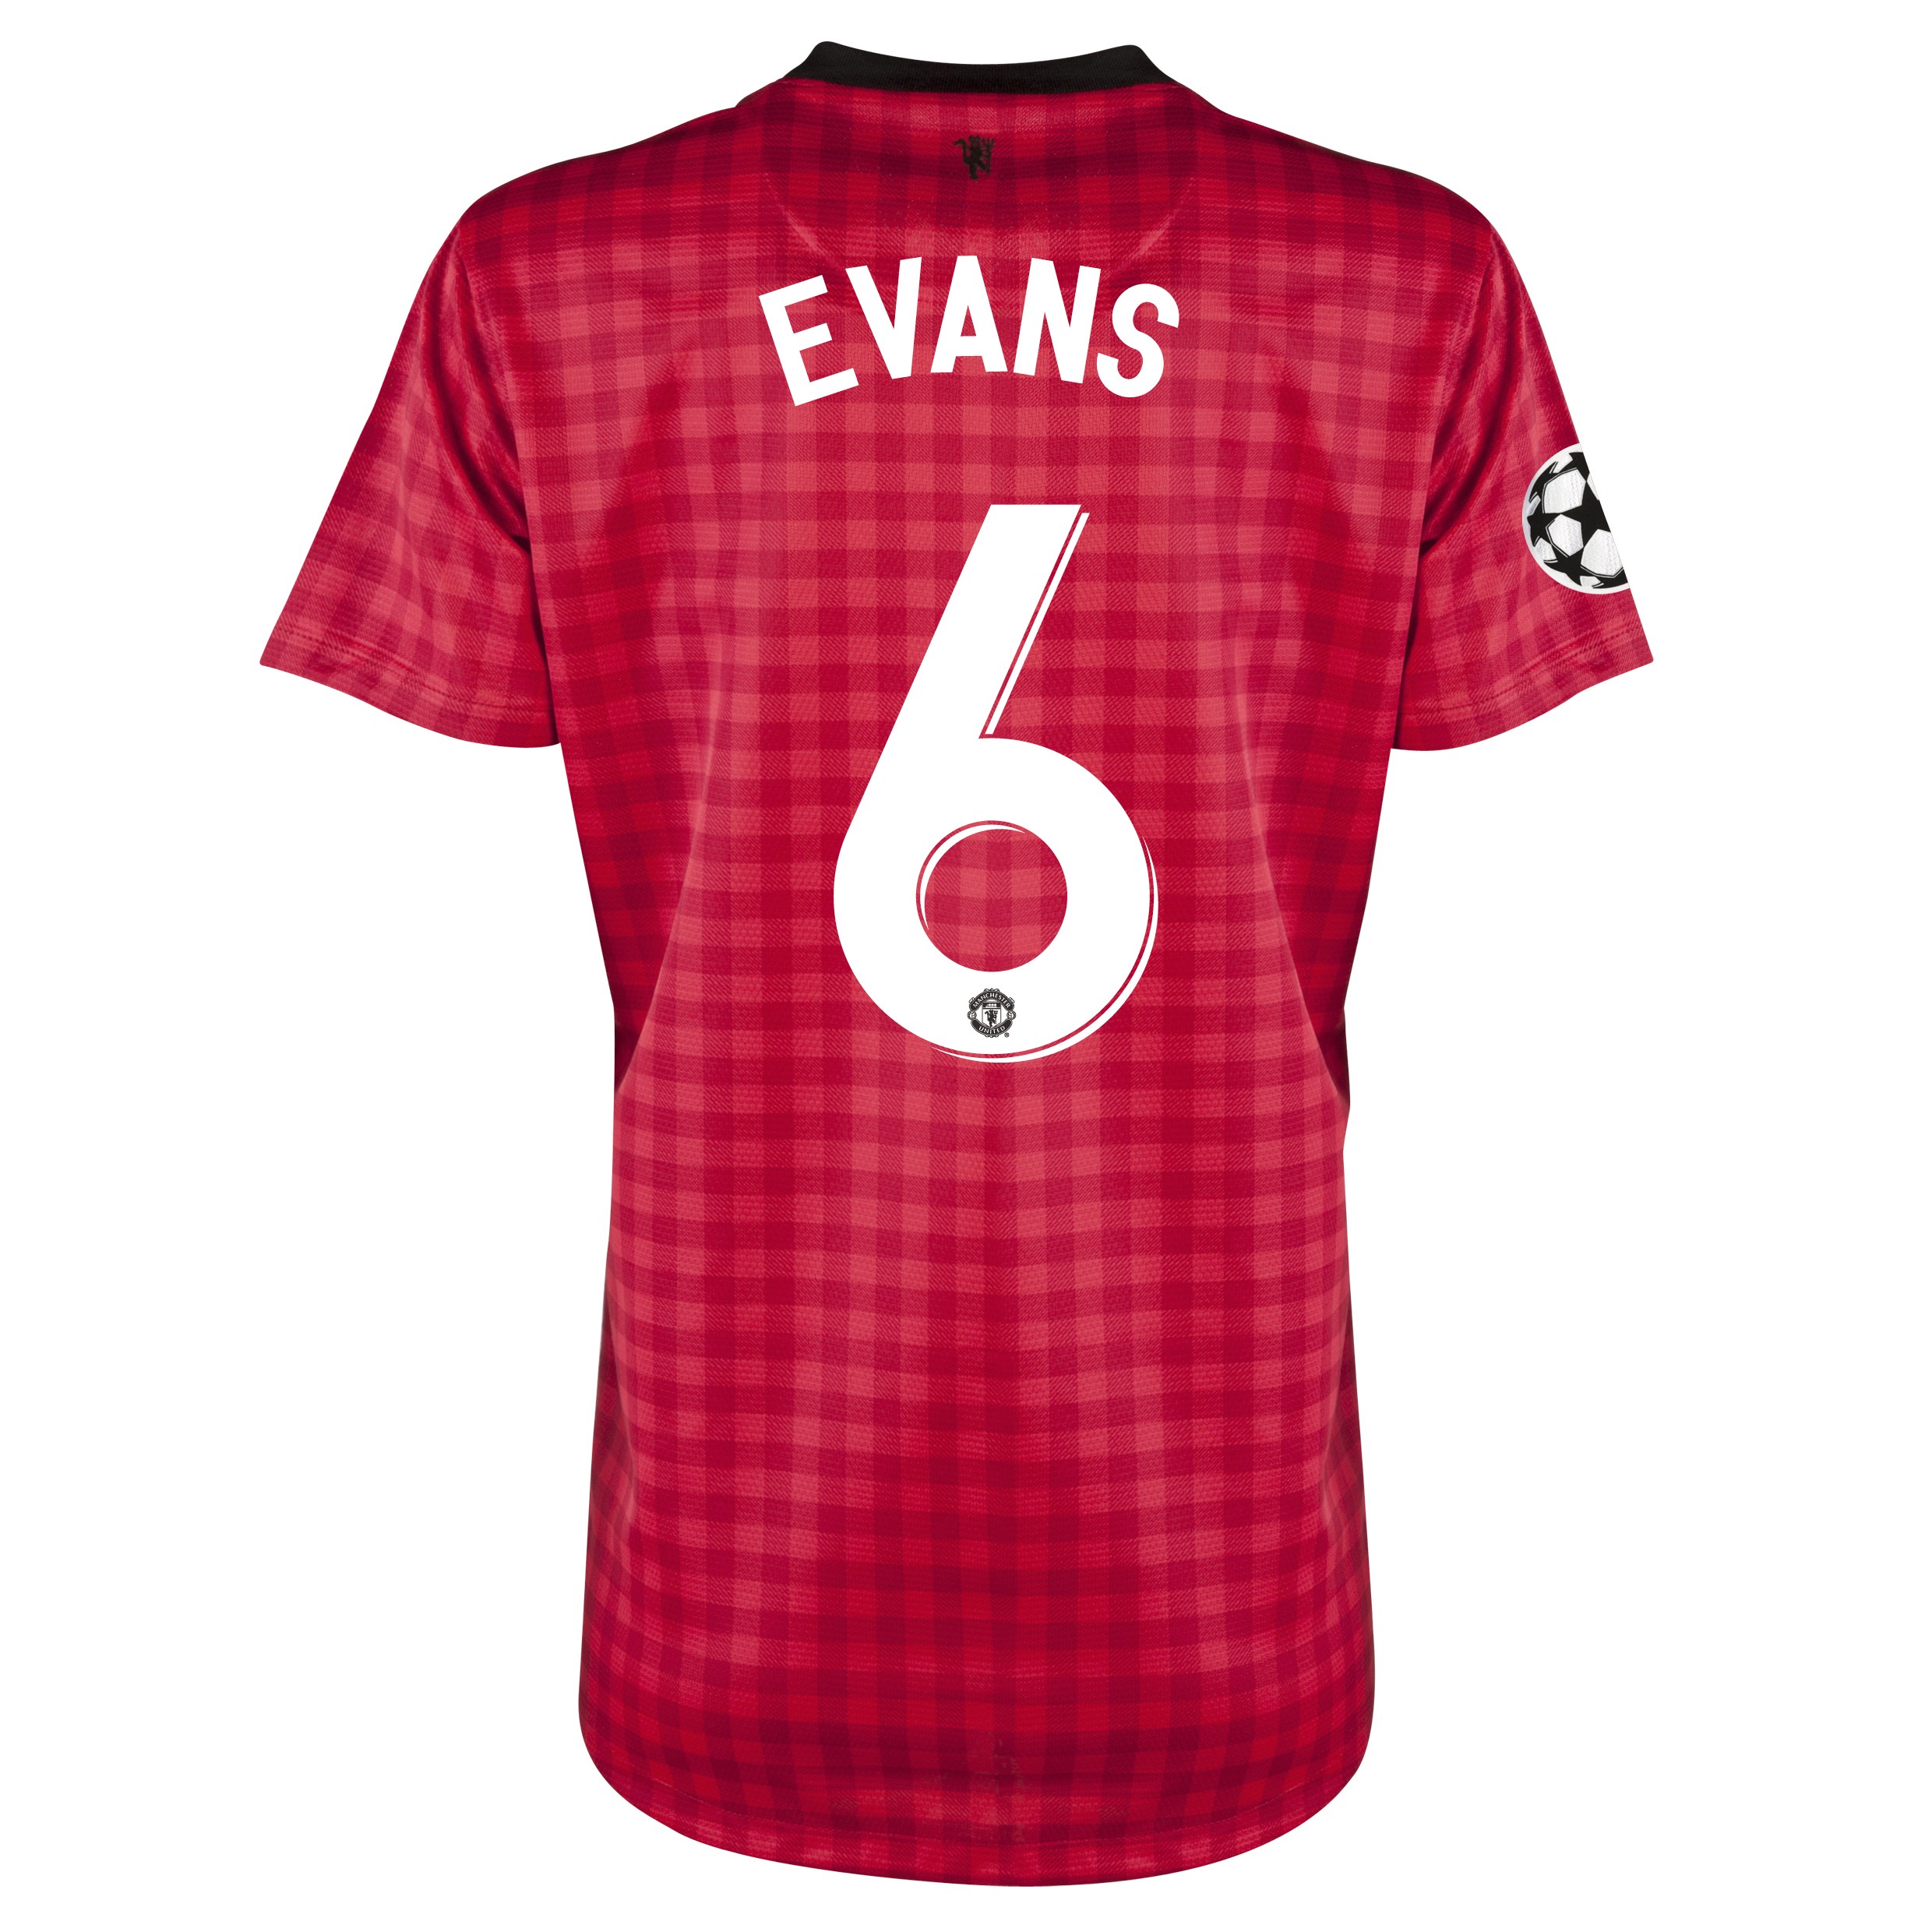 Man United UEFA Champions League Home Shirt 2012/13 - Womens with Evans 6 printing